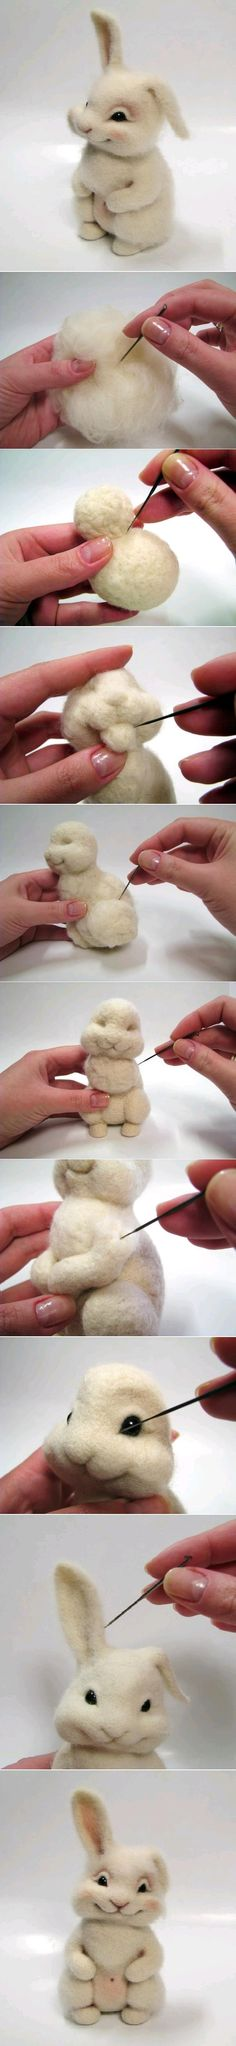 #DIY WOOL RABBIT - SO CUTE. I have never attempted felting, but the more I see stuff like this, the more  want to try!